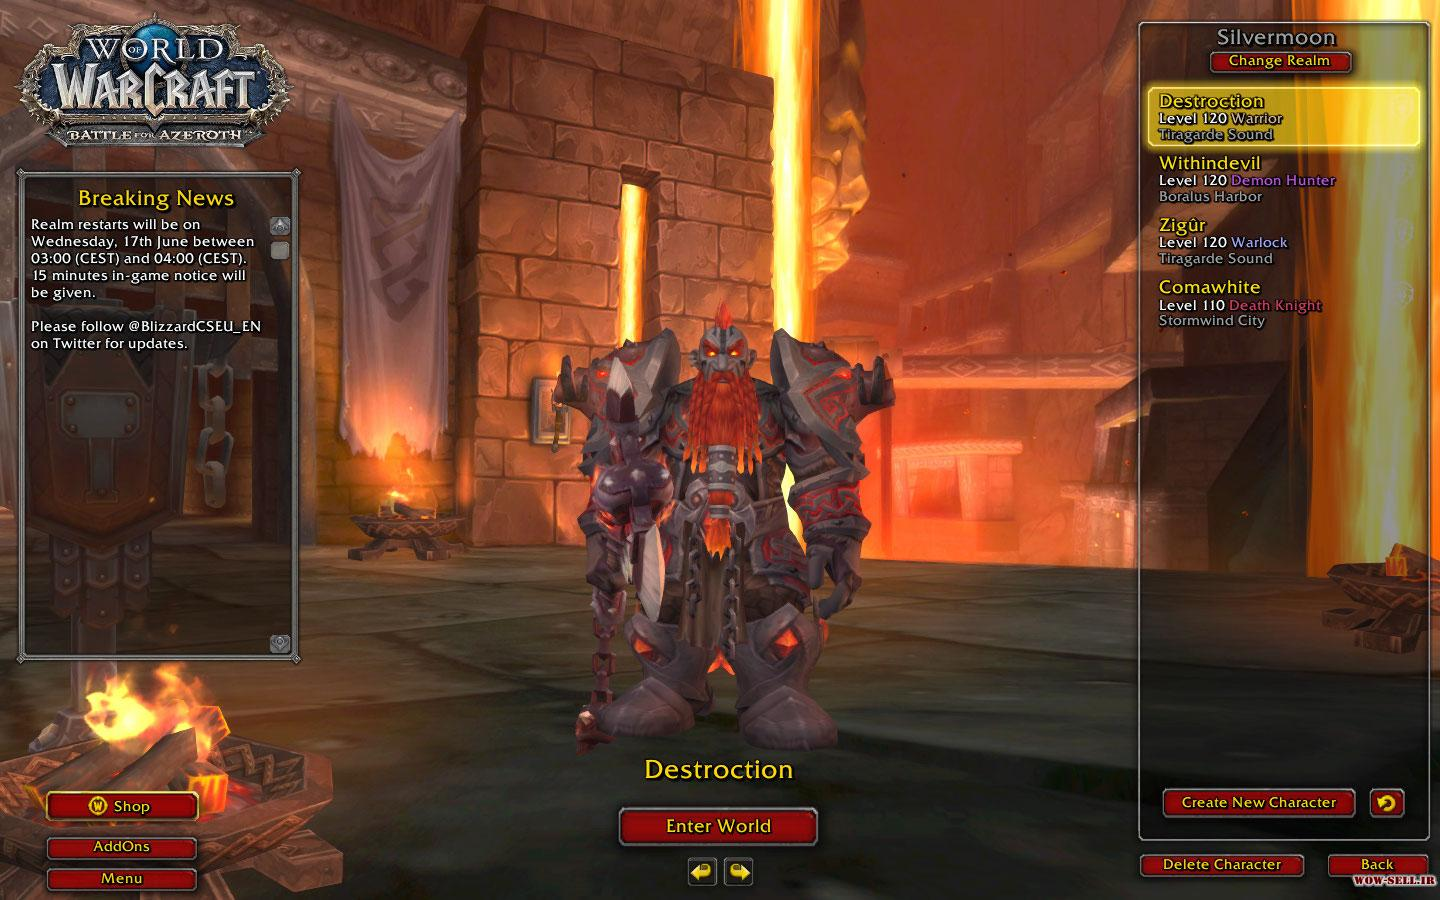 فروش اکانت wow - کد 1127 - کلاس warrior + warlock + death knight + demon hunter - سرور Battle.net